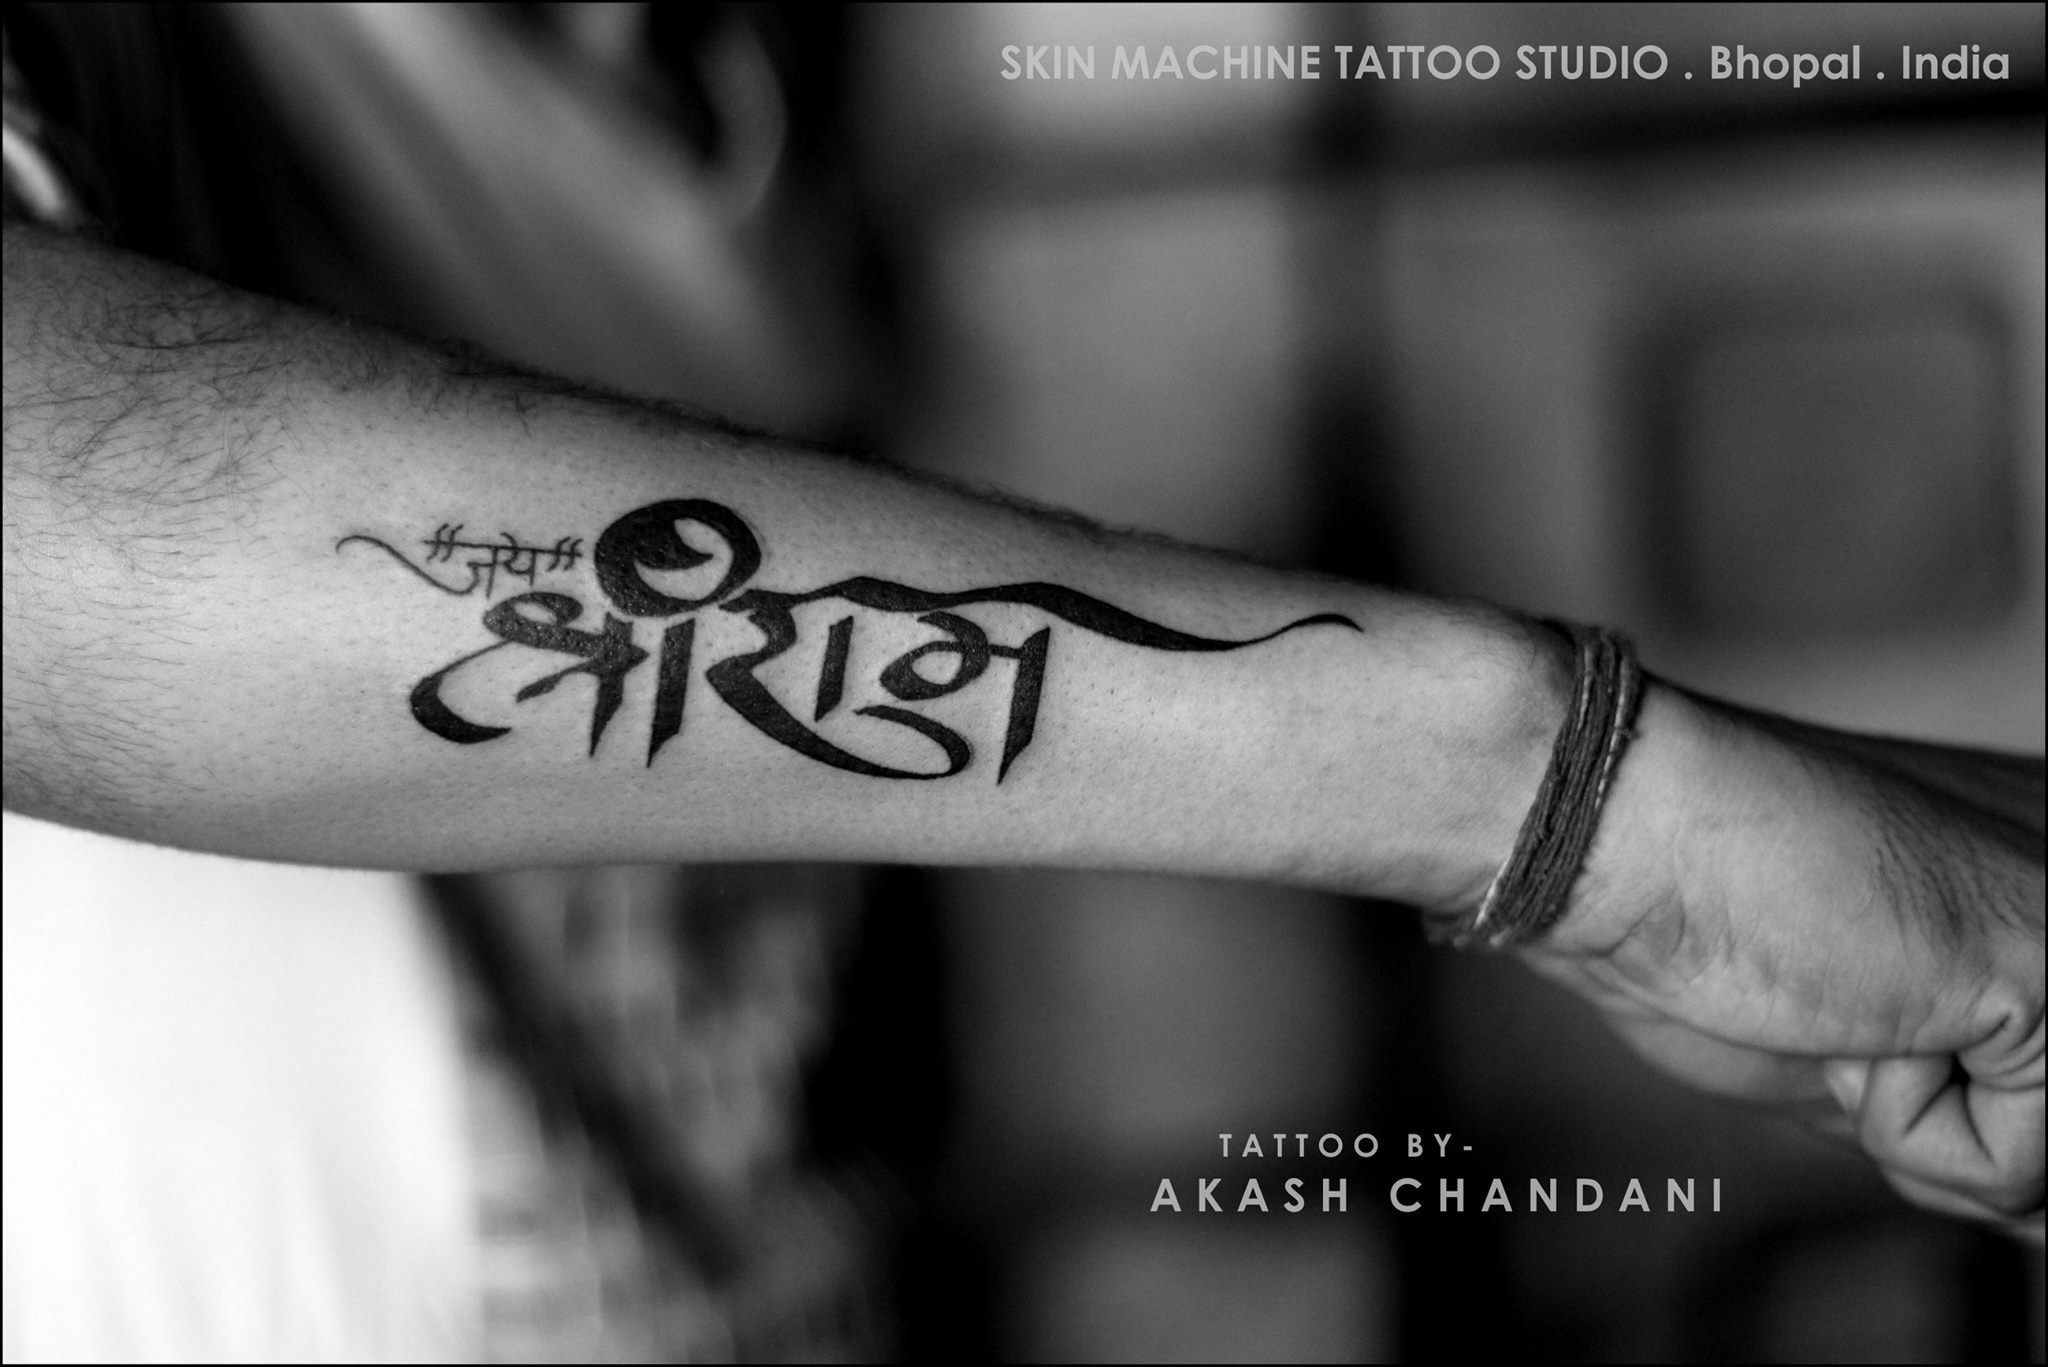 Jai Shri Ram Beautiful Calligraphy Tattoo By Akash Chandani Instagram The Inkmann Thanks For Looking Email Ram Tattoo Famous Tattoos Epic Tattoo